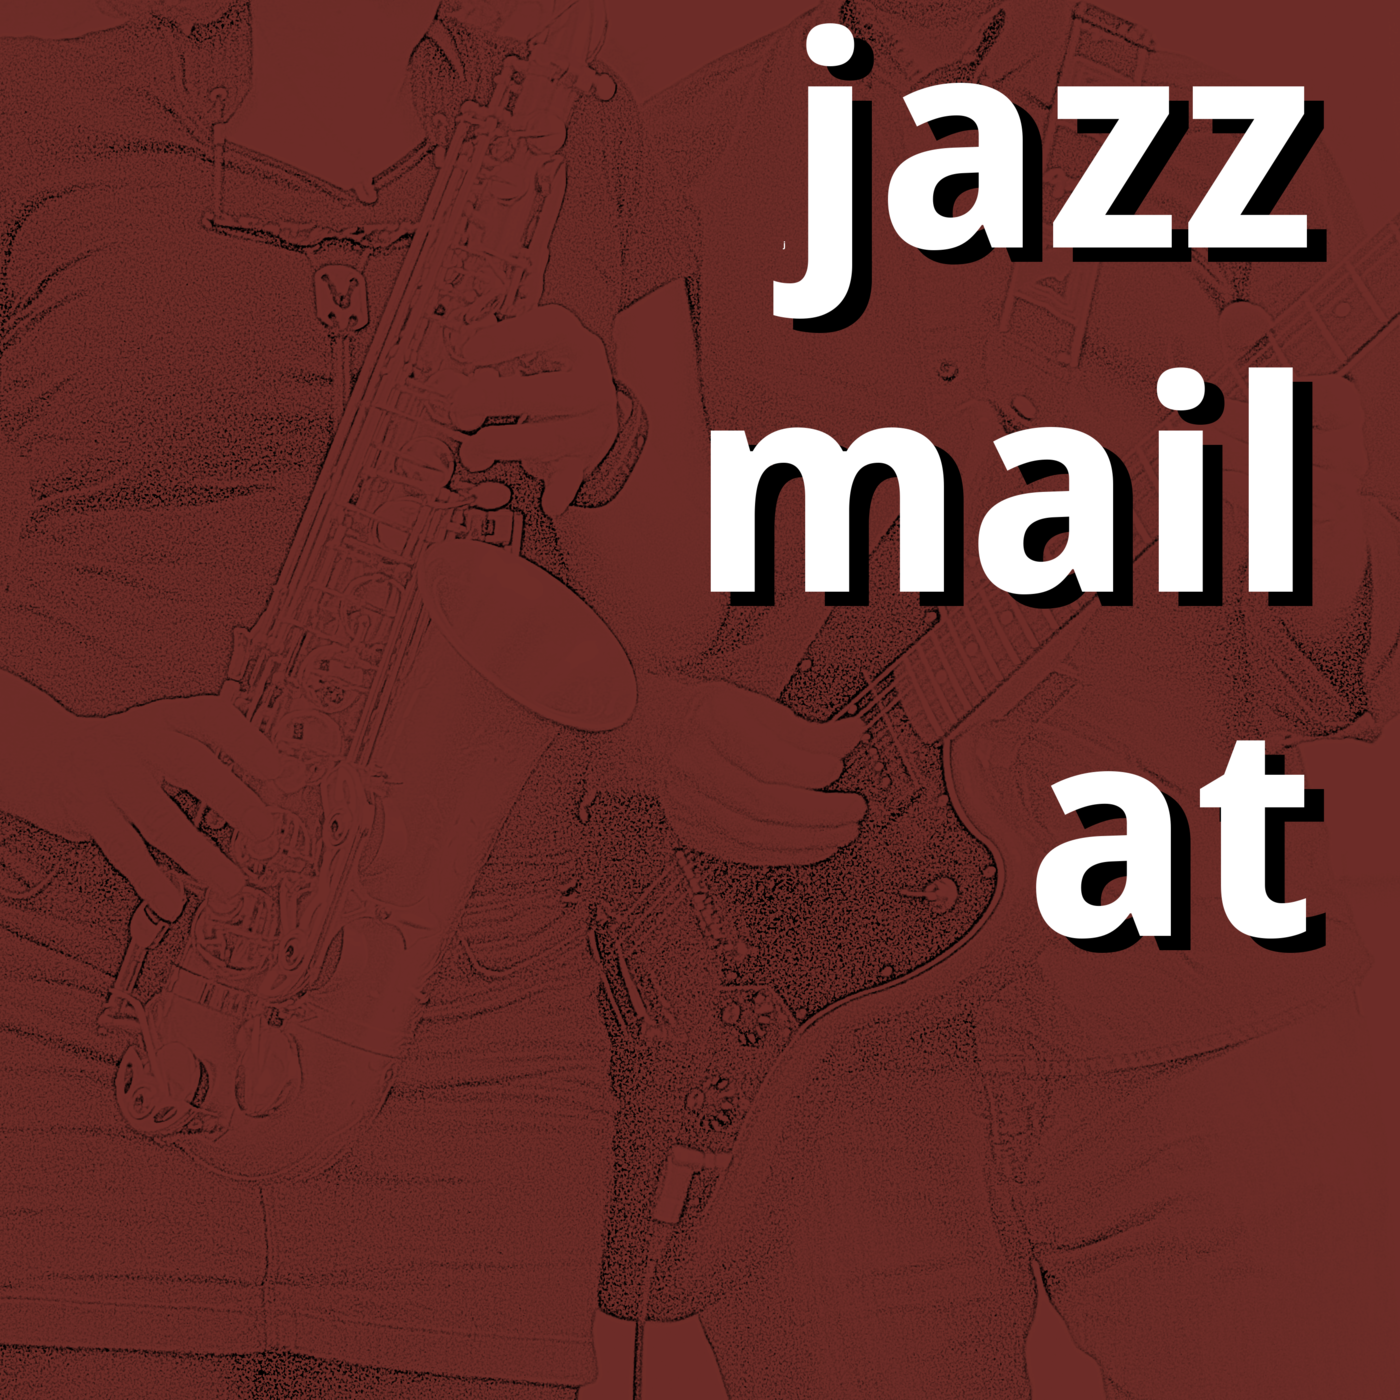 jazz.mail.at